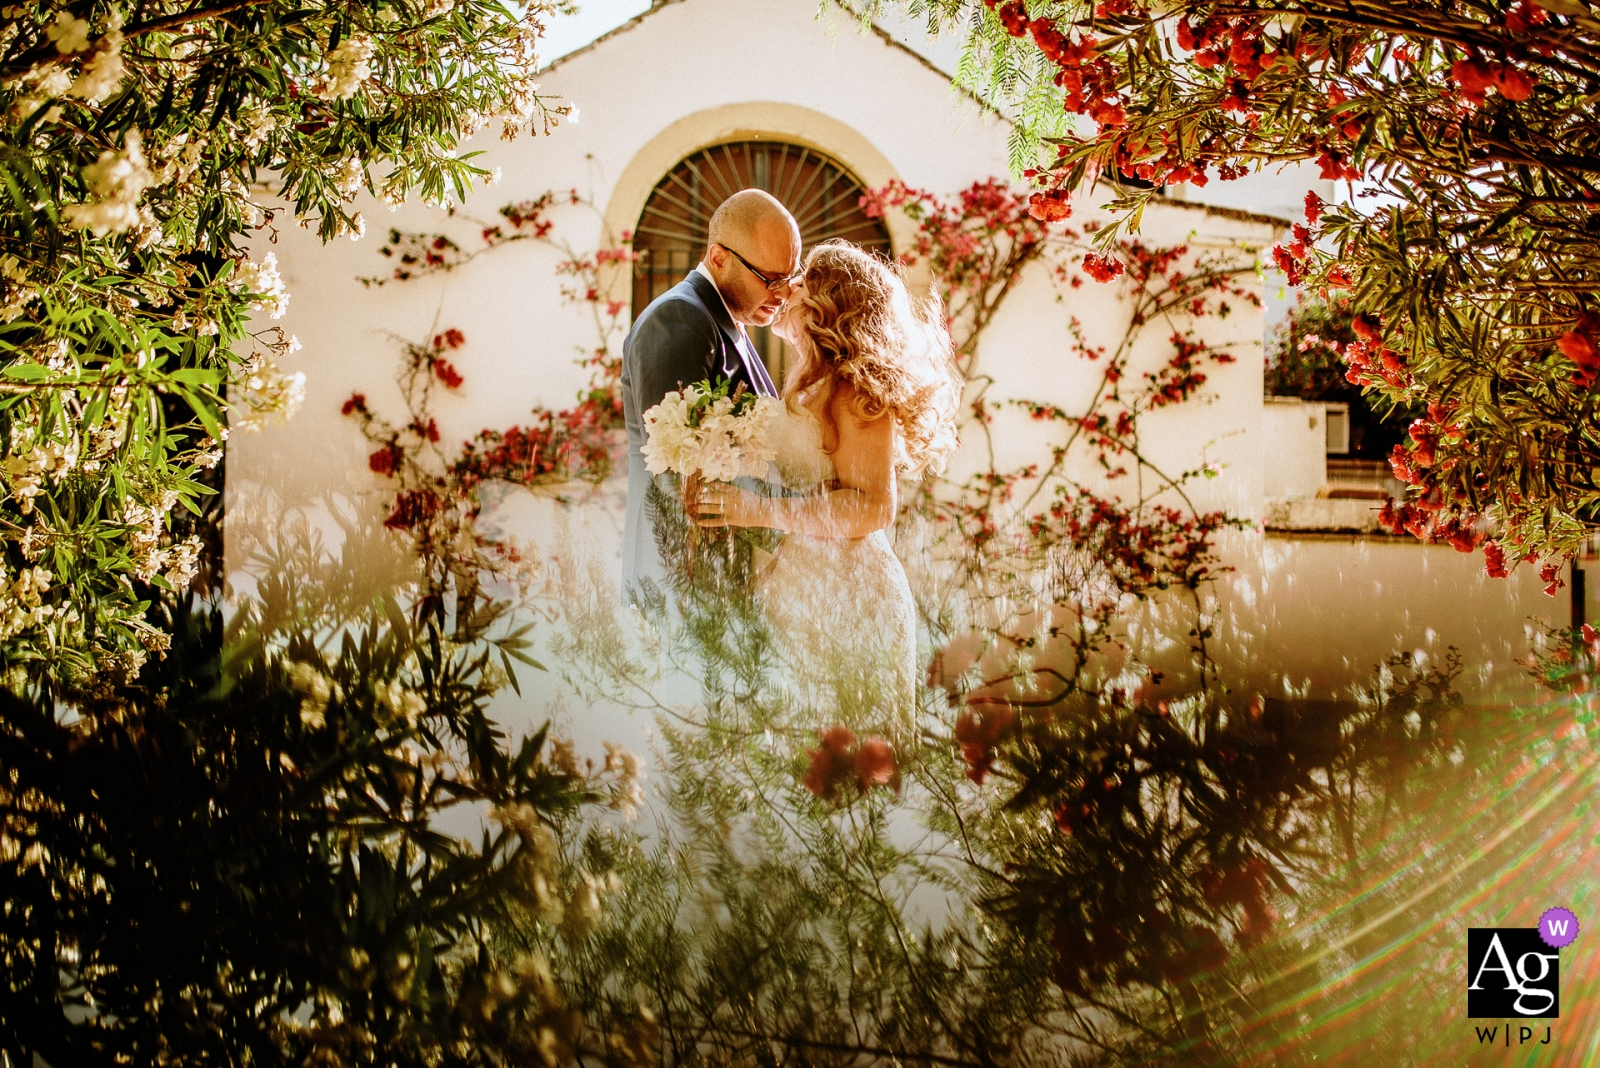 Sergio Cueto is an artistic wedding photographer for Madrid